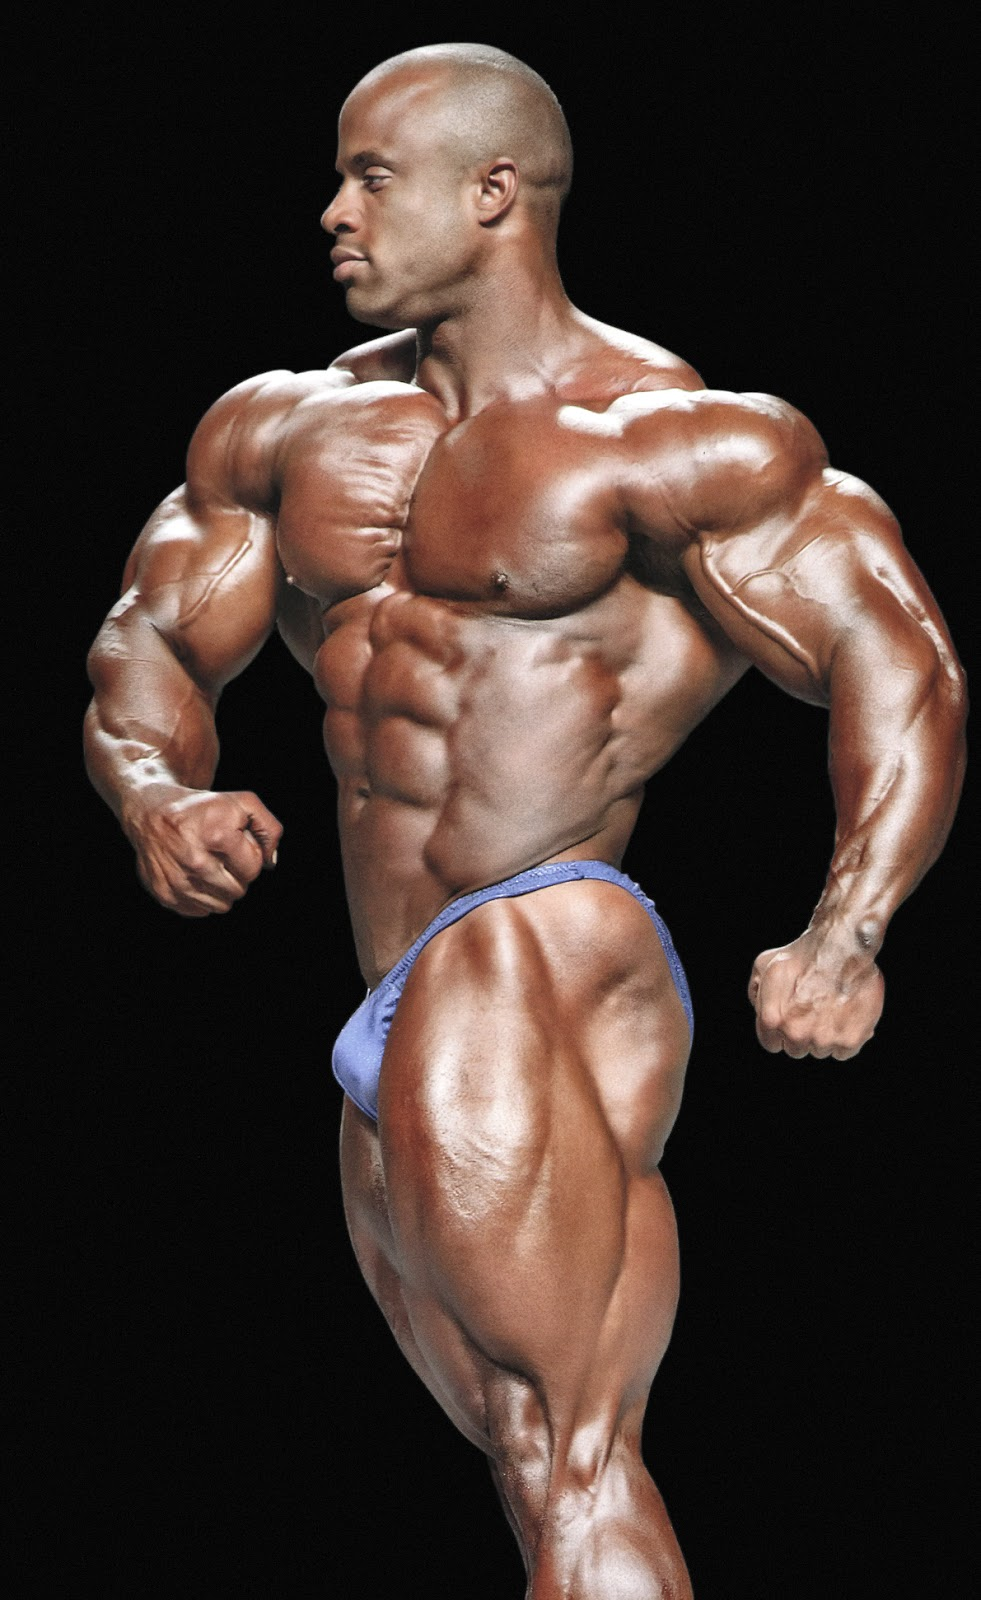 Victor Martinez - 2007 Mr. Olympia HQ SCANS!!!